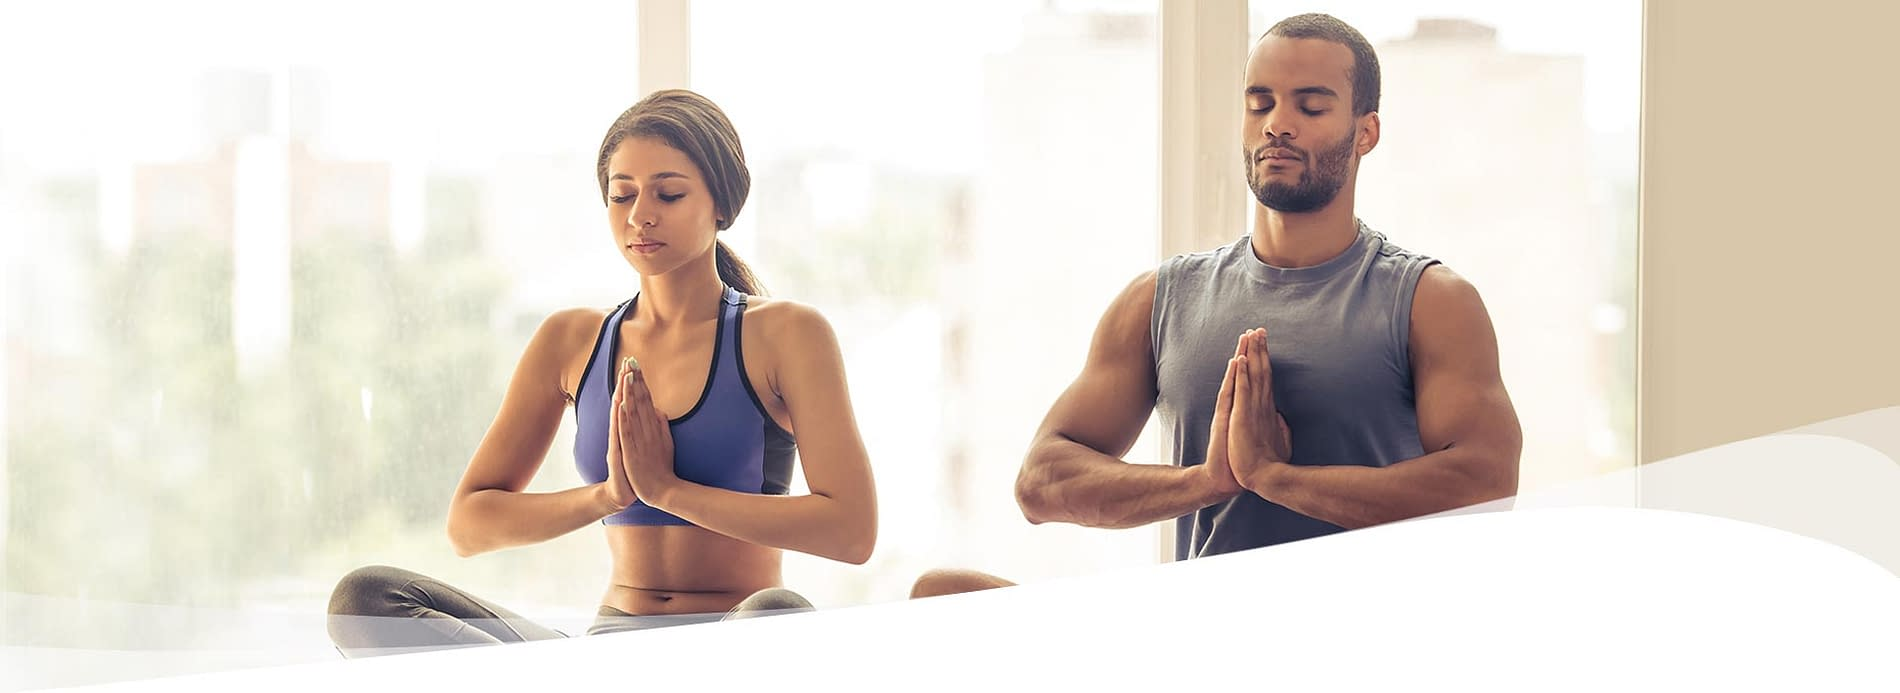 what to wear fro yoga